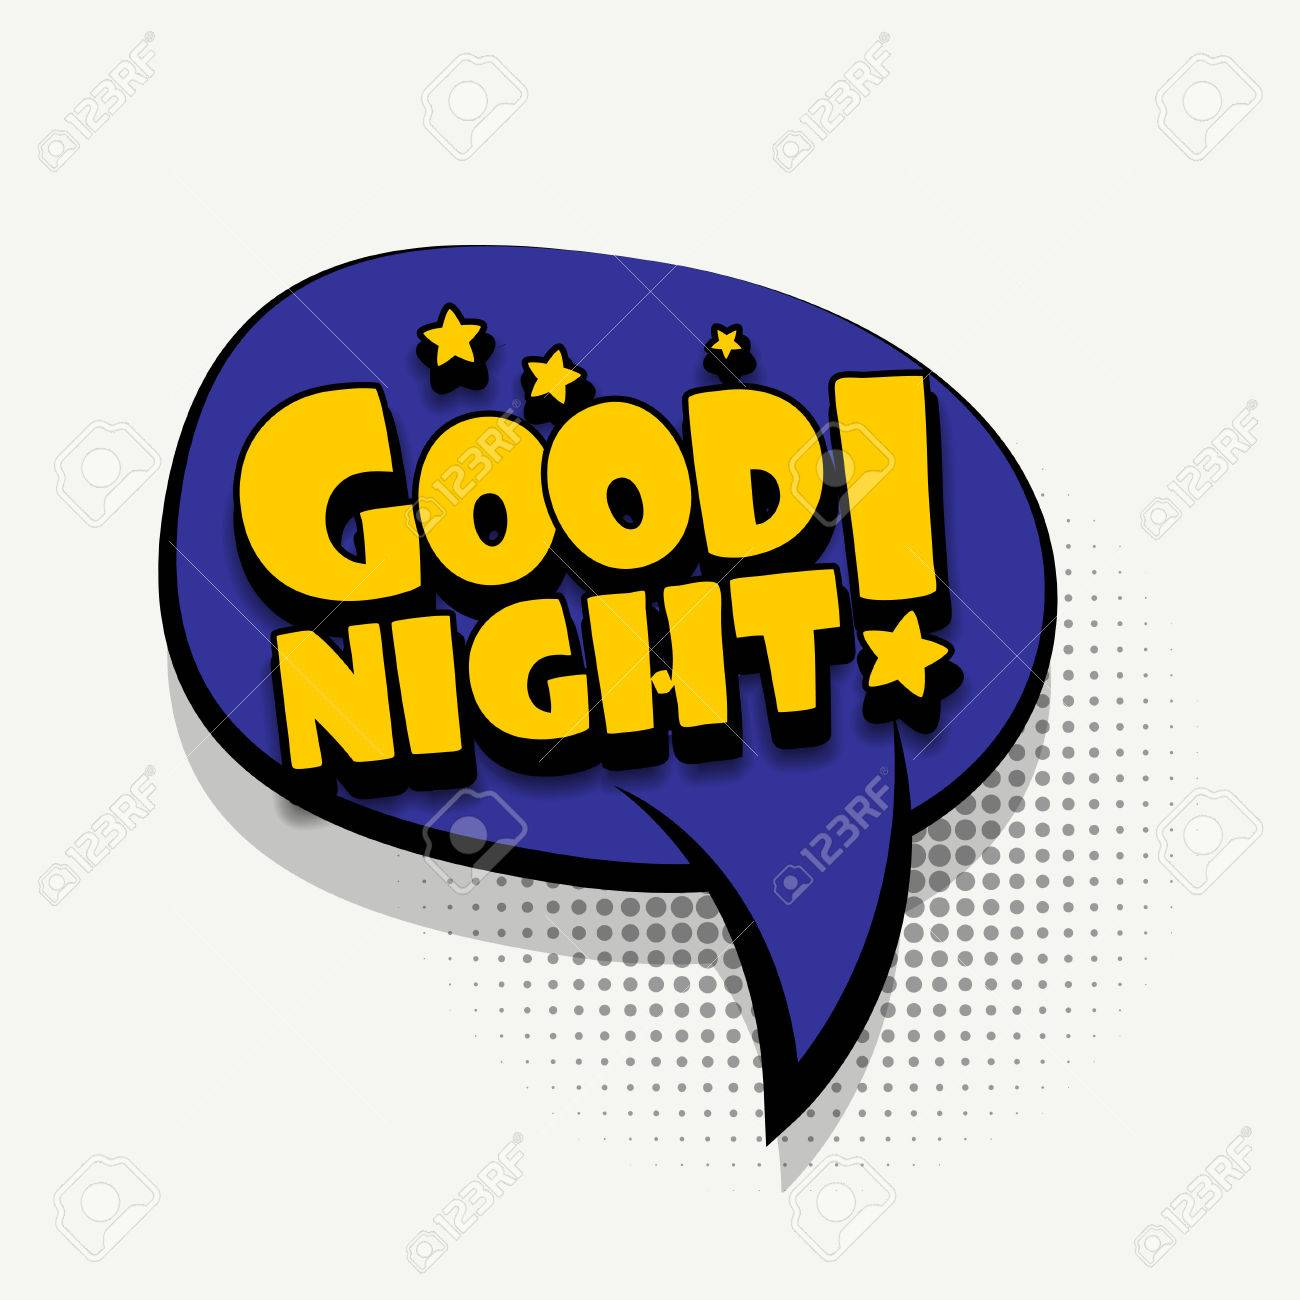 Lettering Good Night Wishes Comics Book Balloon Bubble Icon